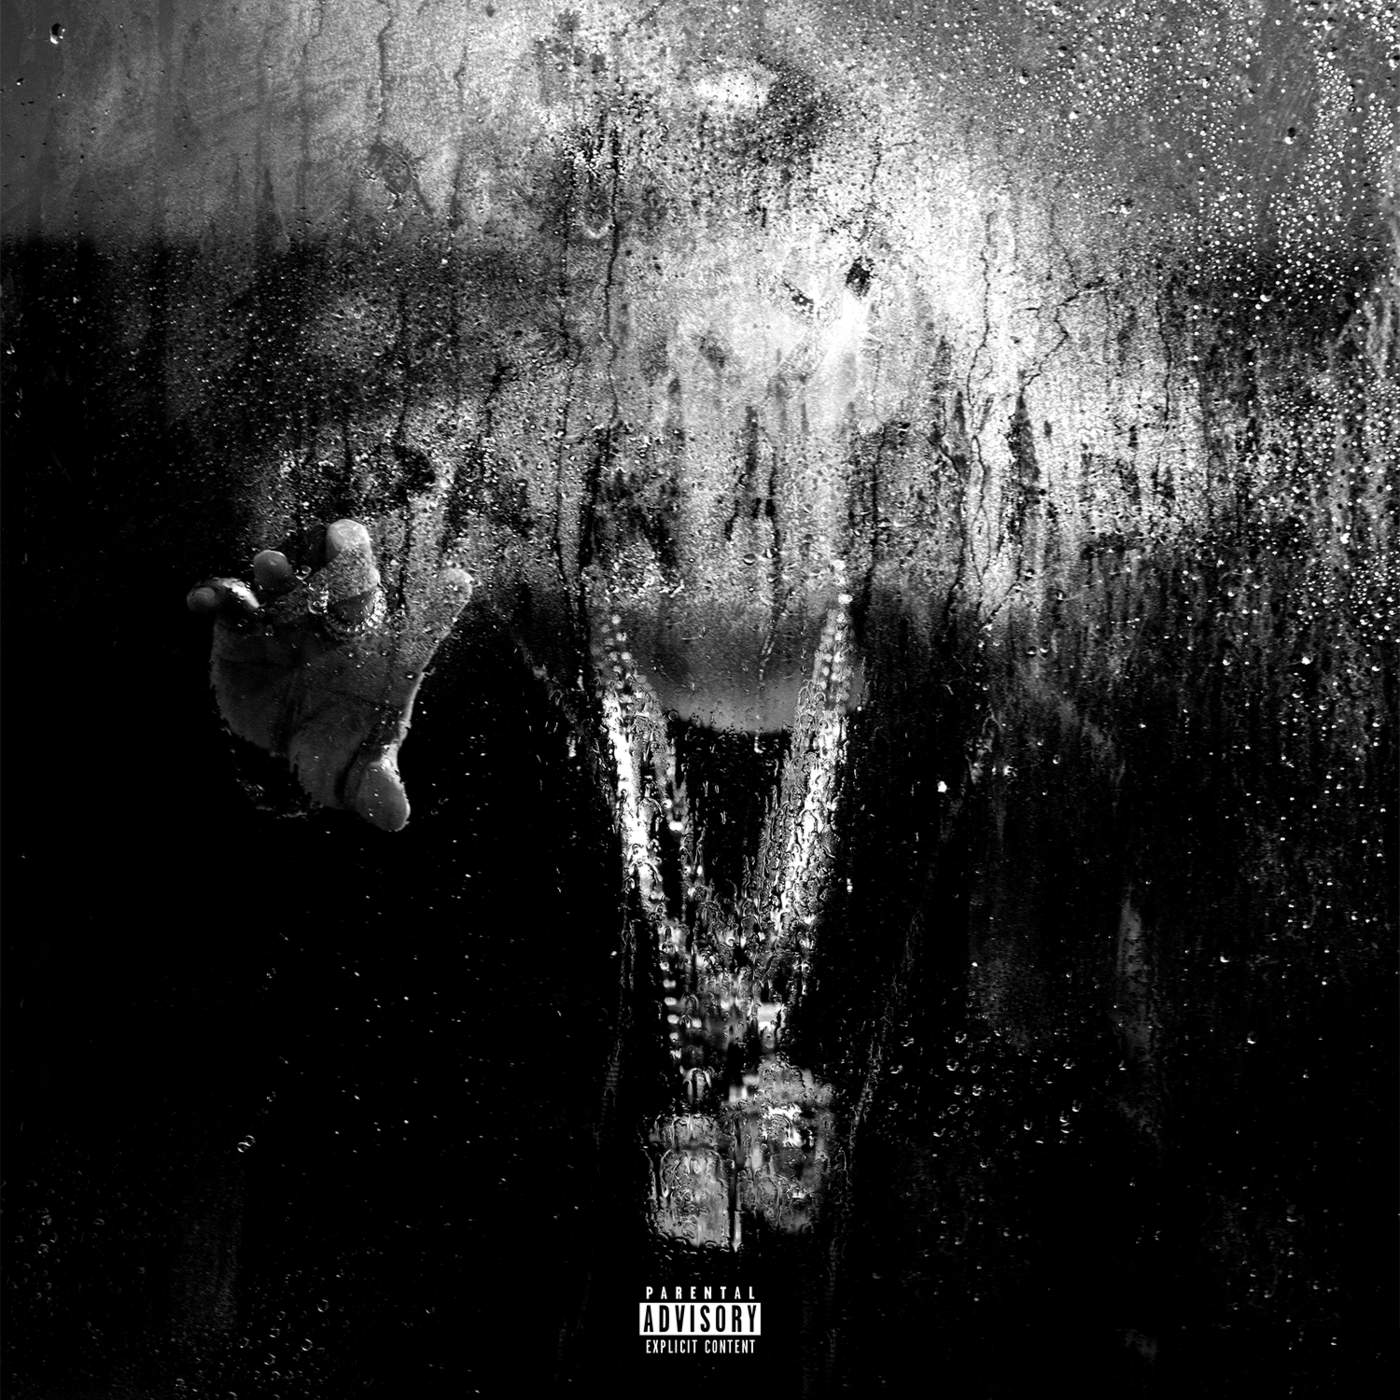 Ecoutez « Me, Myself and I », le freestyle de Big Sean